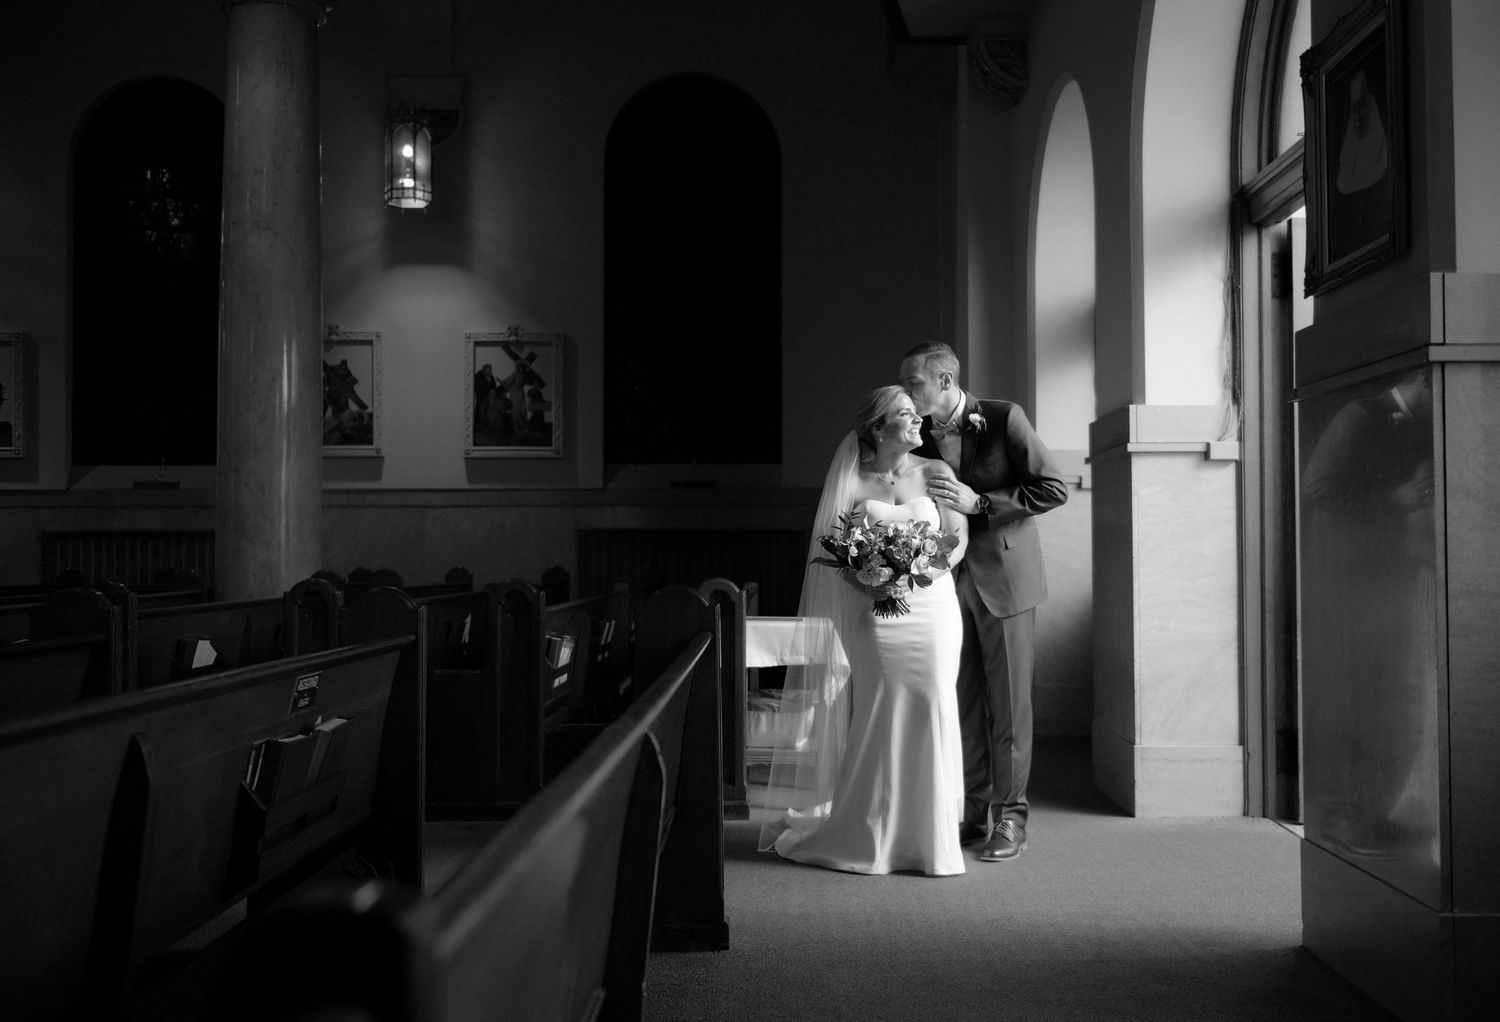 bride and groom candid portrait at church